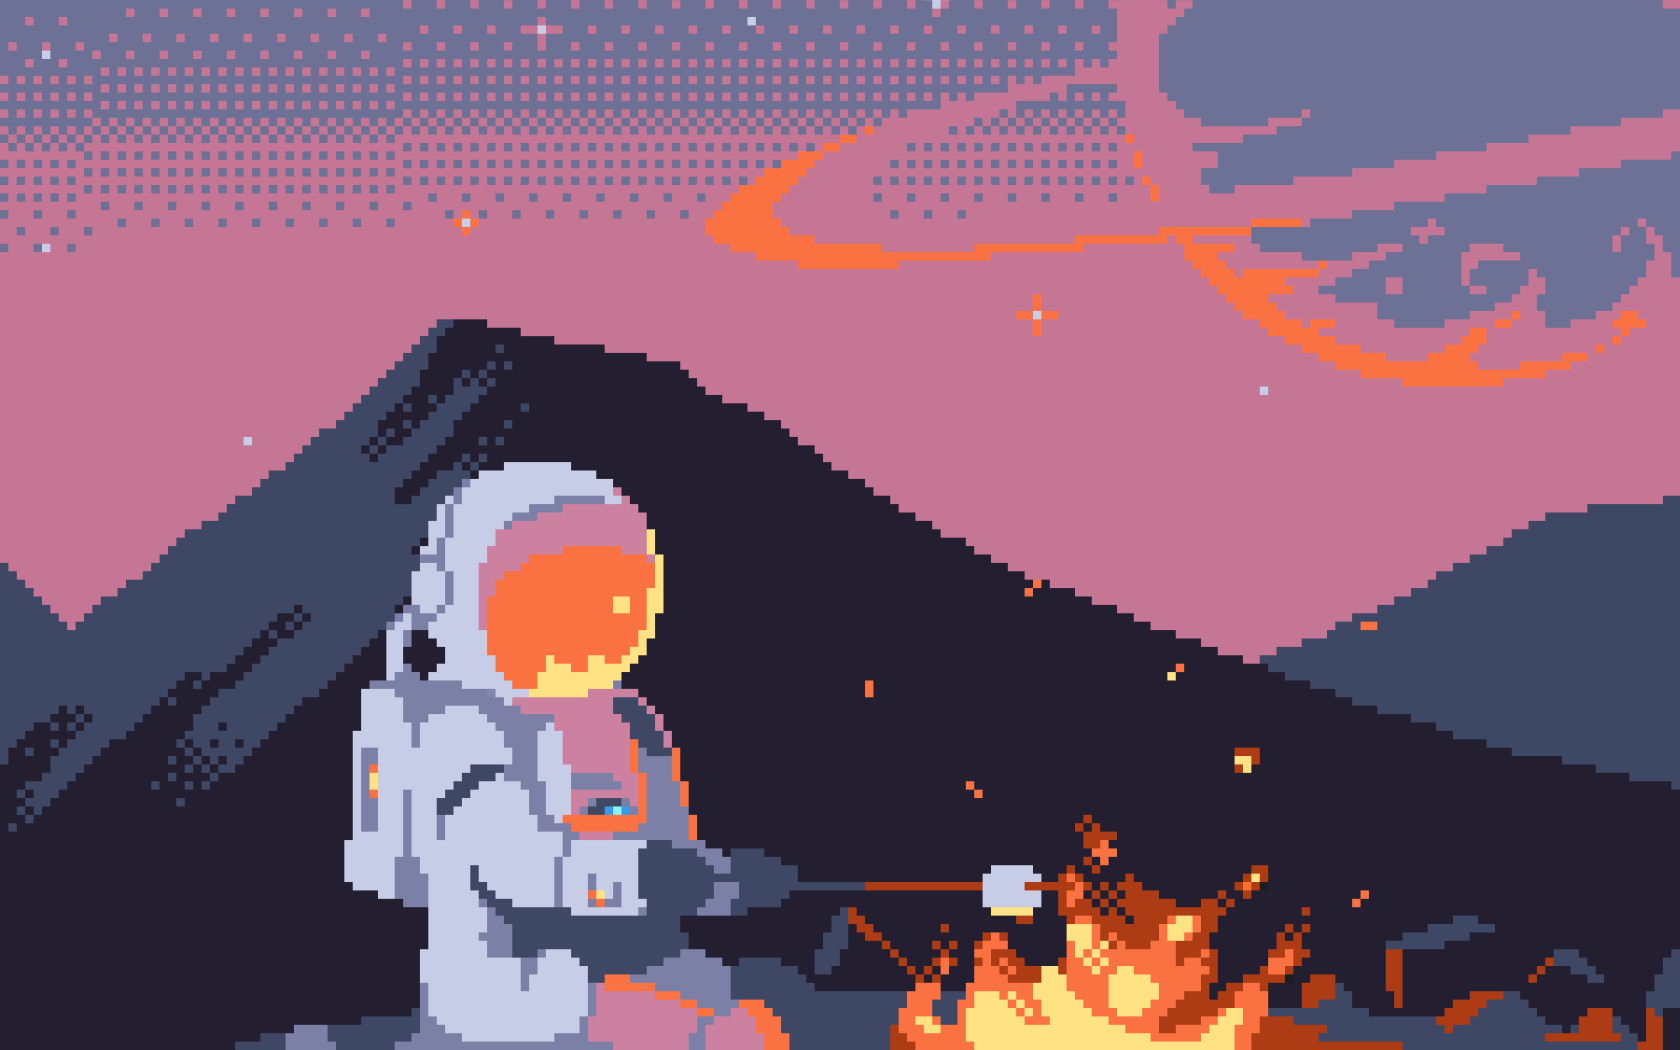 Artistic - Pixel Art  8-Bit Astronaut Spacesuit Fire Wallpaper